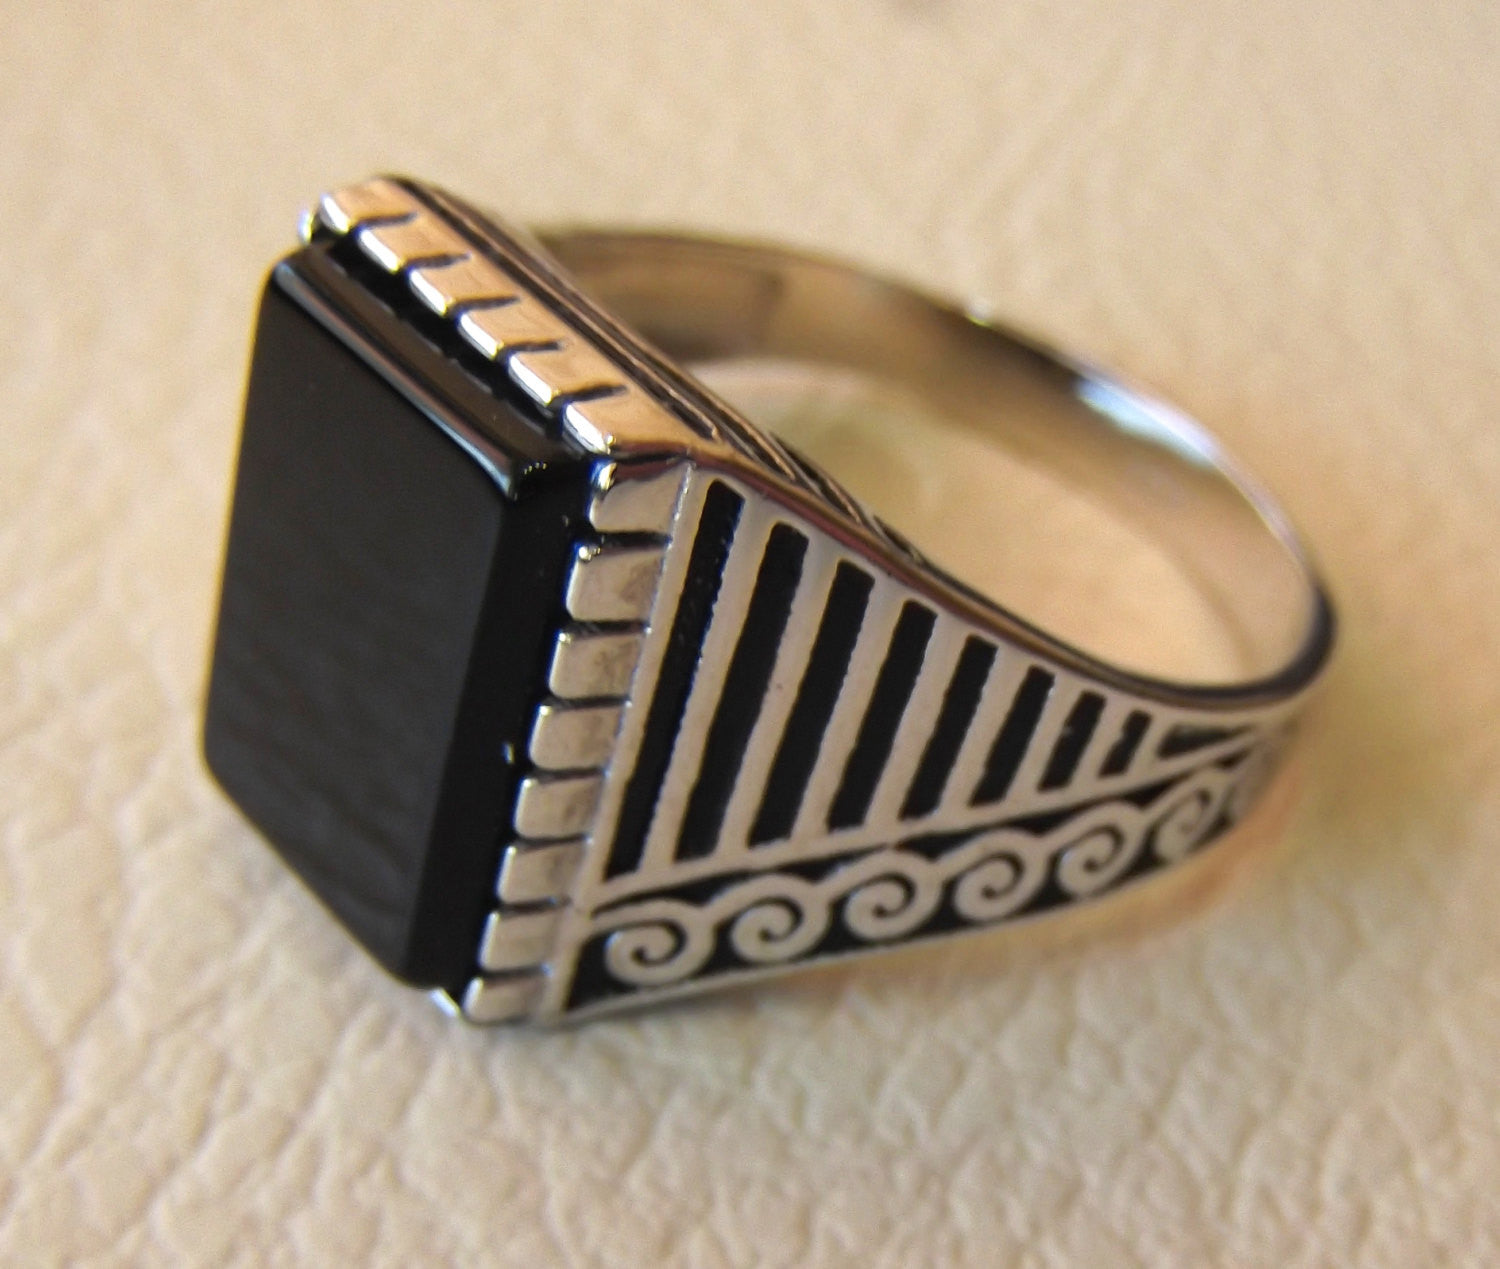 onyx black agate natural flat rectangular semi precious stone sterling silver 925 man ring any size turkey arabic style jewelry fast ship